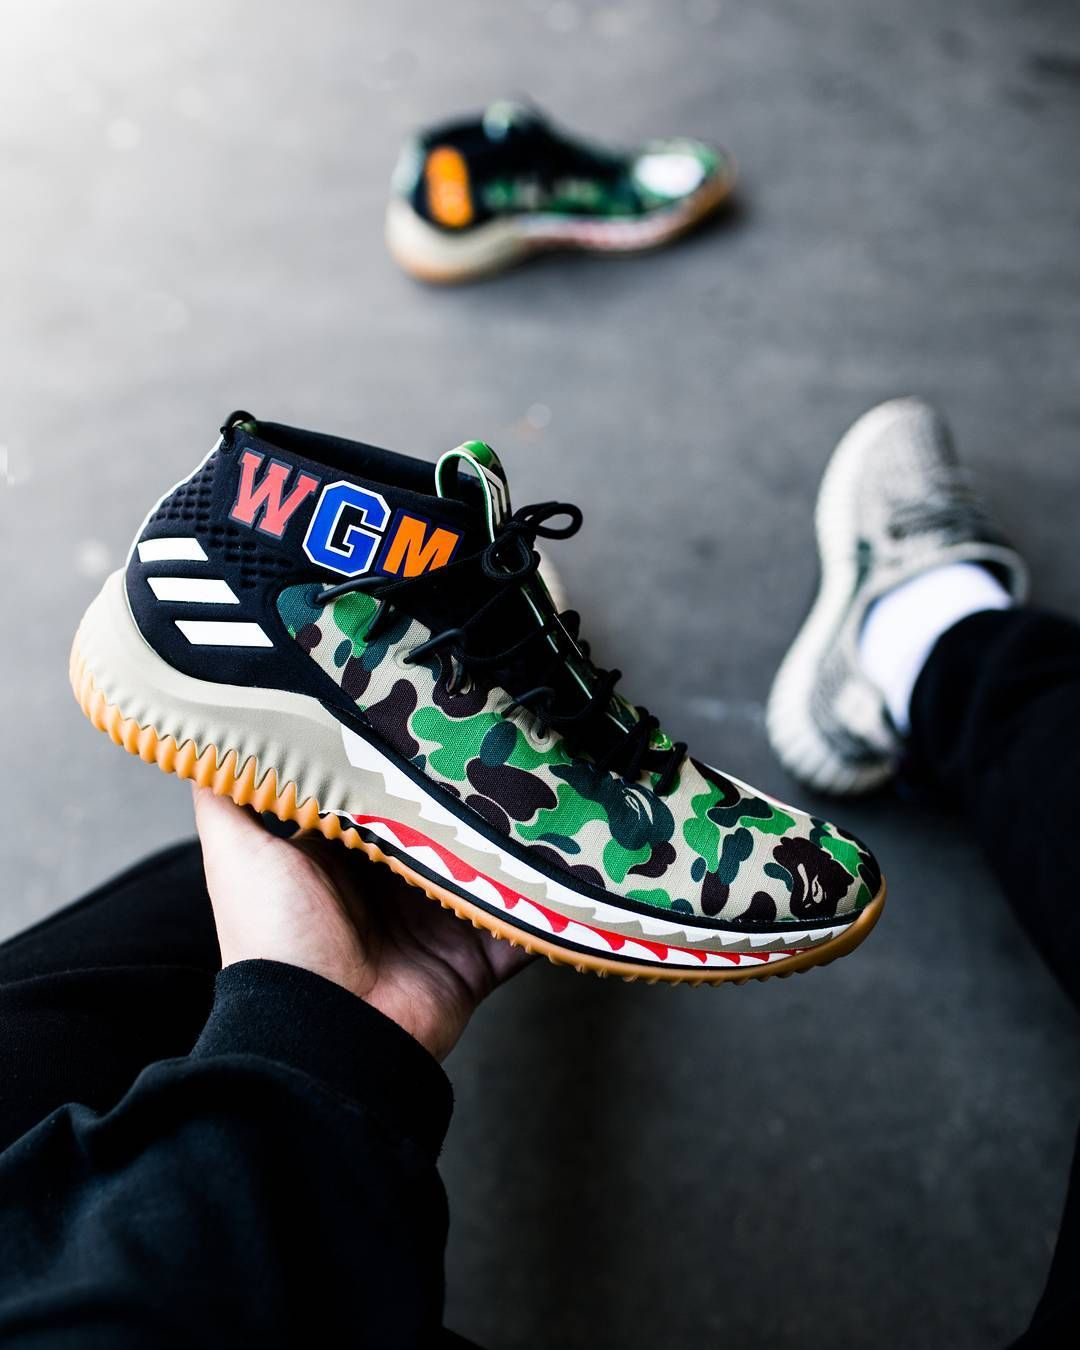 separation shoes 757a2 9444b Release Date  February 17, 2018 Adidas x A Bathing Ape Dame 4 Green Camo  Credit  The Good Will Out